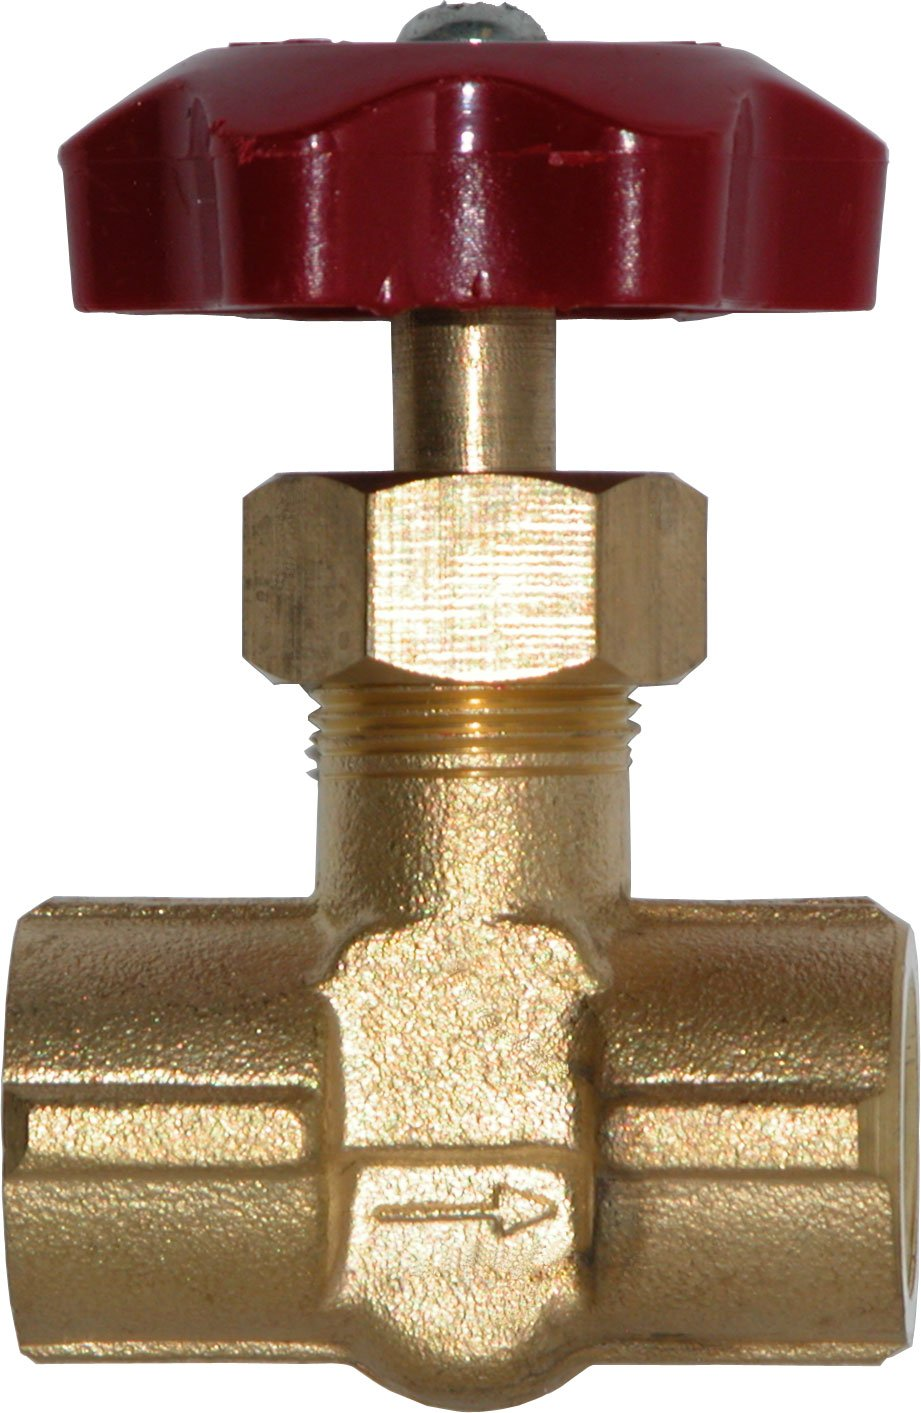 Winters SNV Series Brass Needle Valve with ABS Plastic Handle, 1/4'' NPT Female